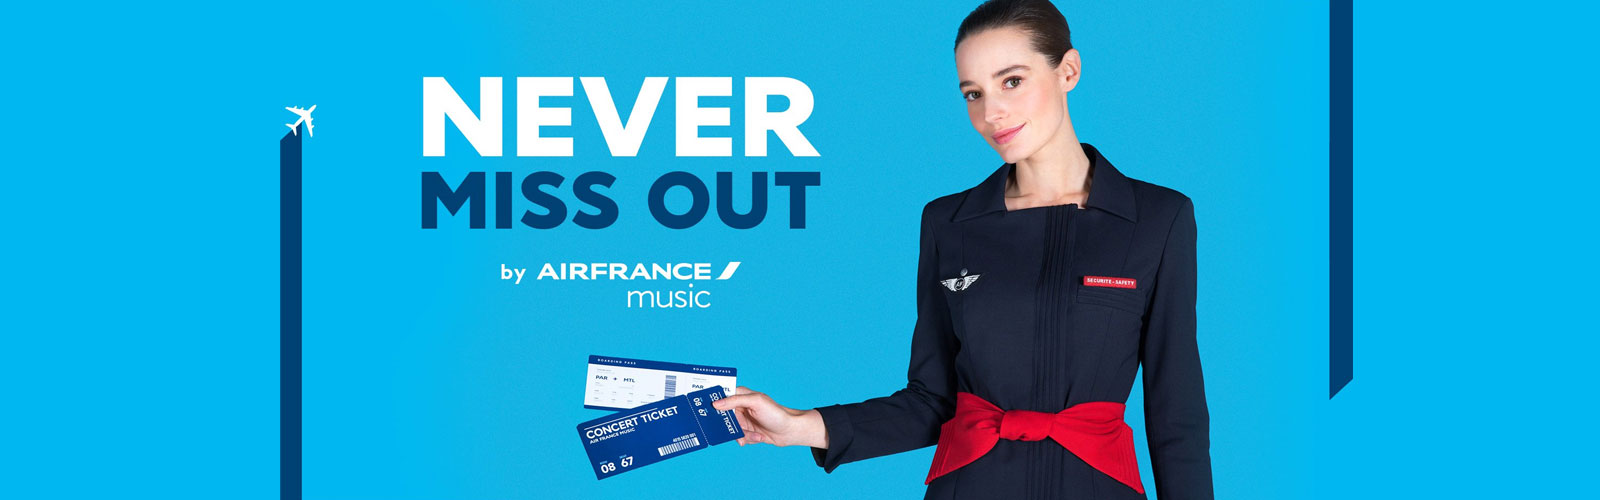 never-miss-out-airfrance-music